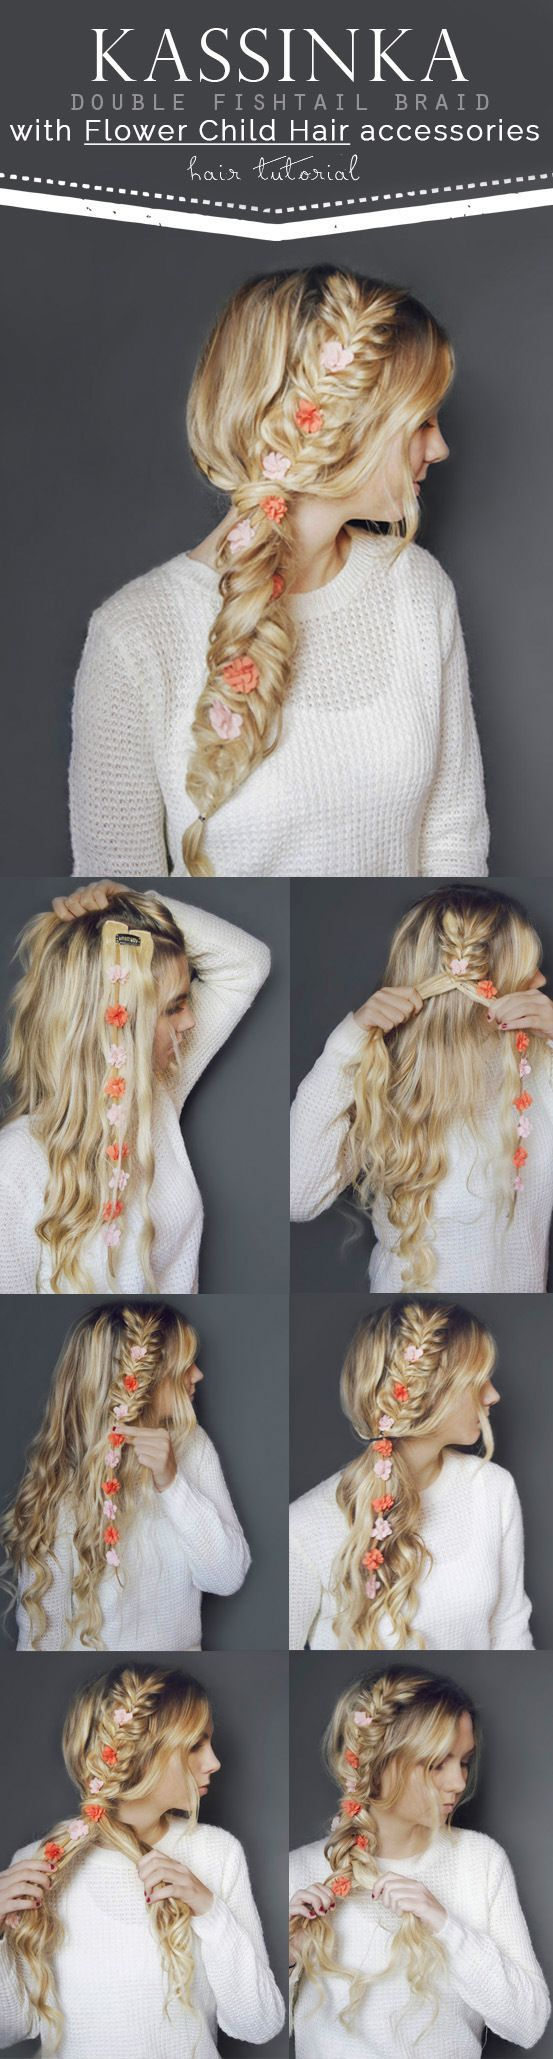 Kassinka Hair Tutorial with Bleach Blonde Luxy Hair extensions in perfect voluminous flower fishtail braid. The perfect Boho hairstyle for special occasions. Photo by: www.kassinka.com/...